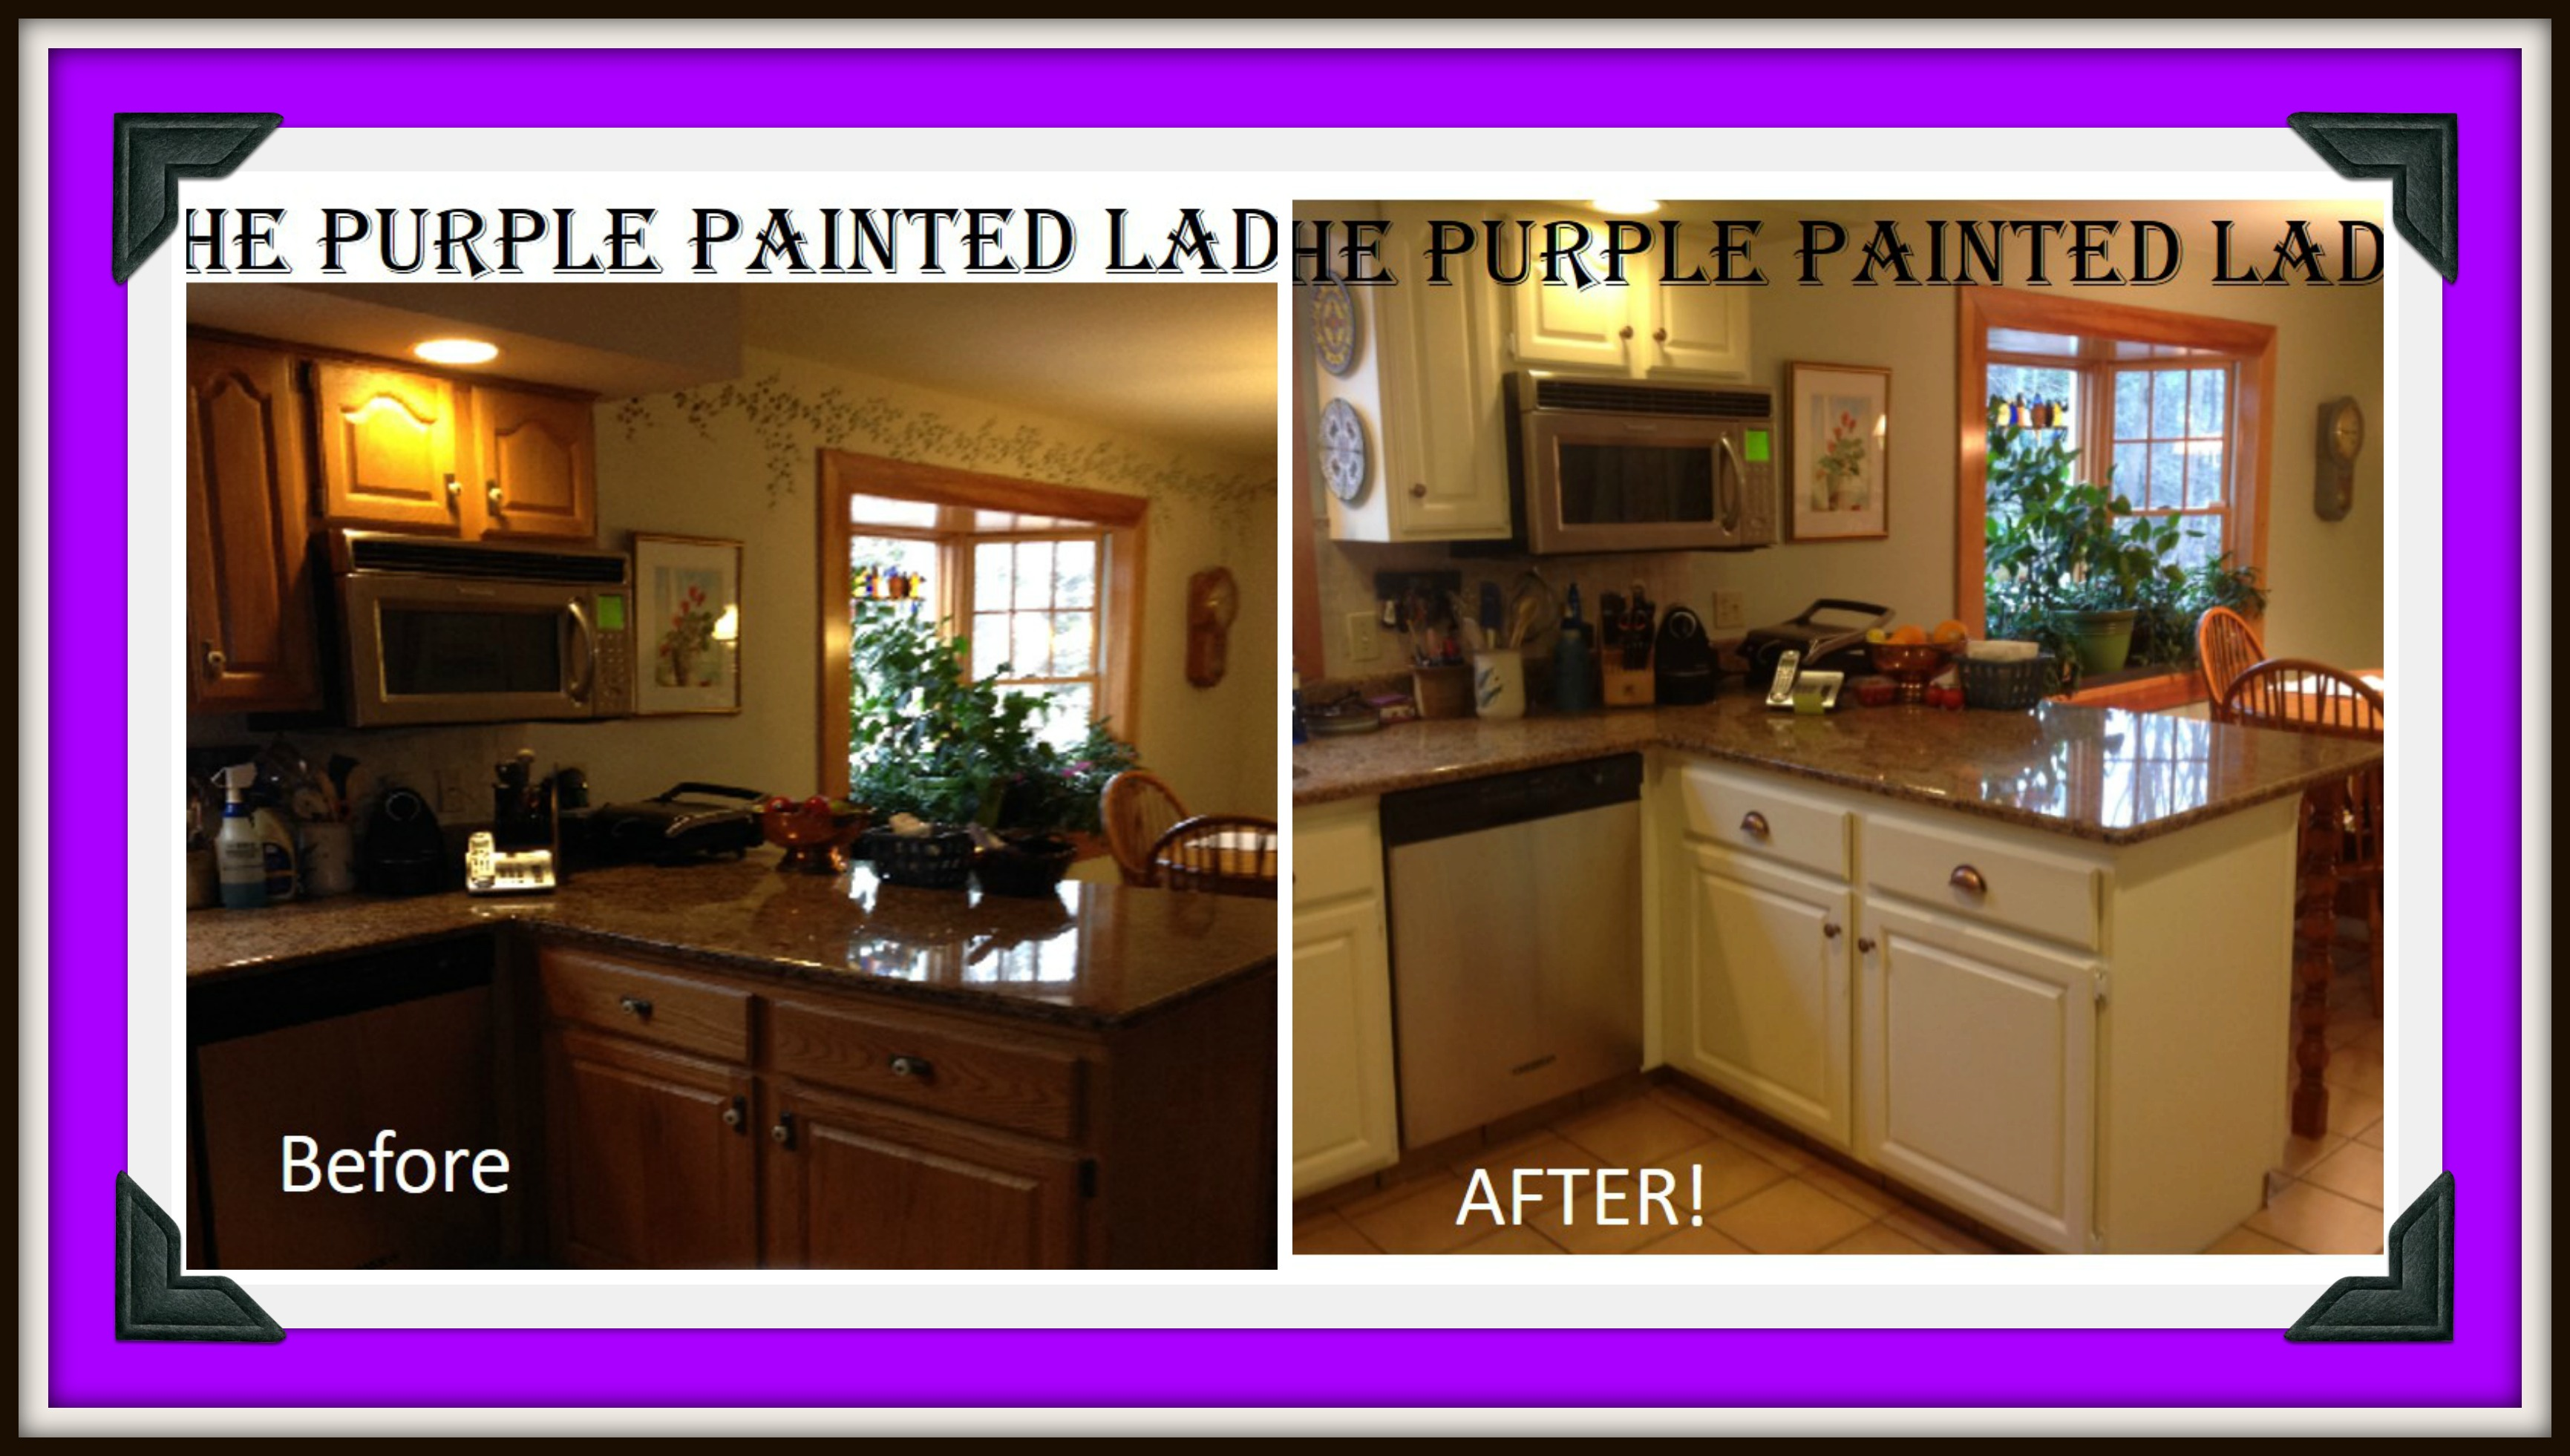 chalk paint kitchen cabinetsDo Your Kitchen Cabinets Look Tired  The Purple Painted Lady